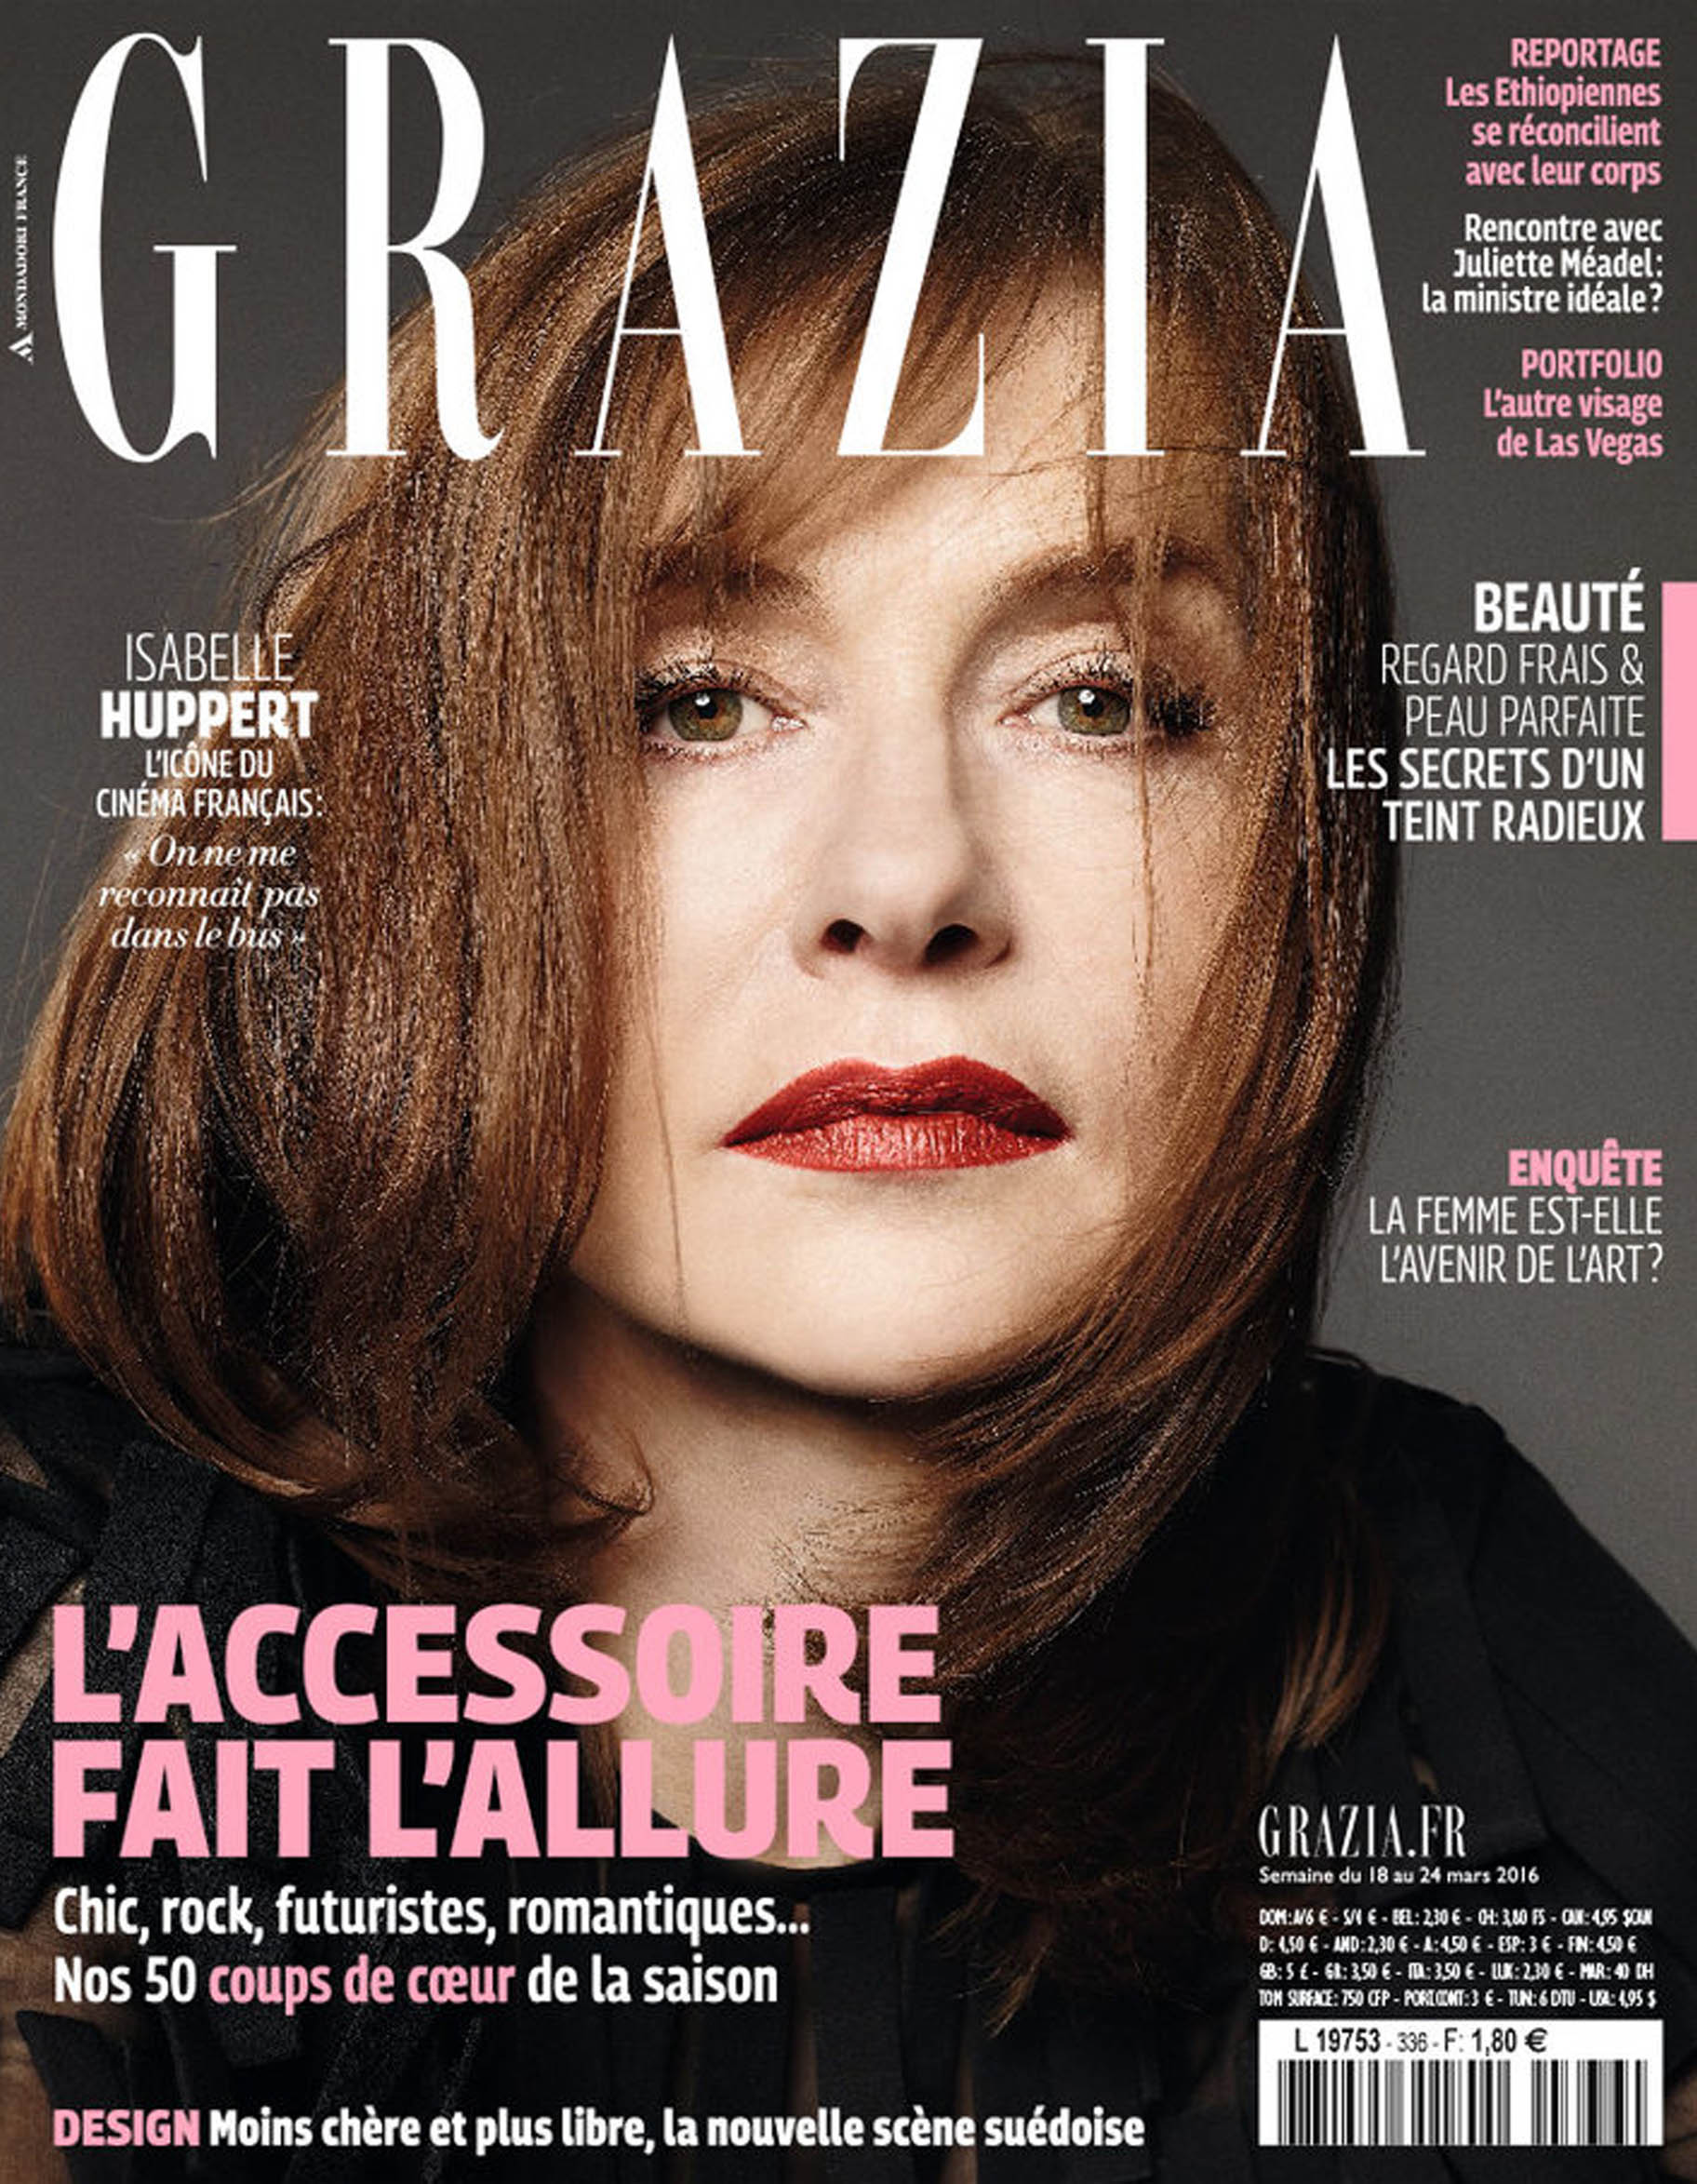 GRAZIA-16-03-16-V2 copie